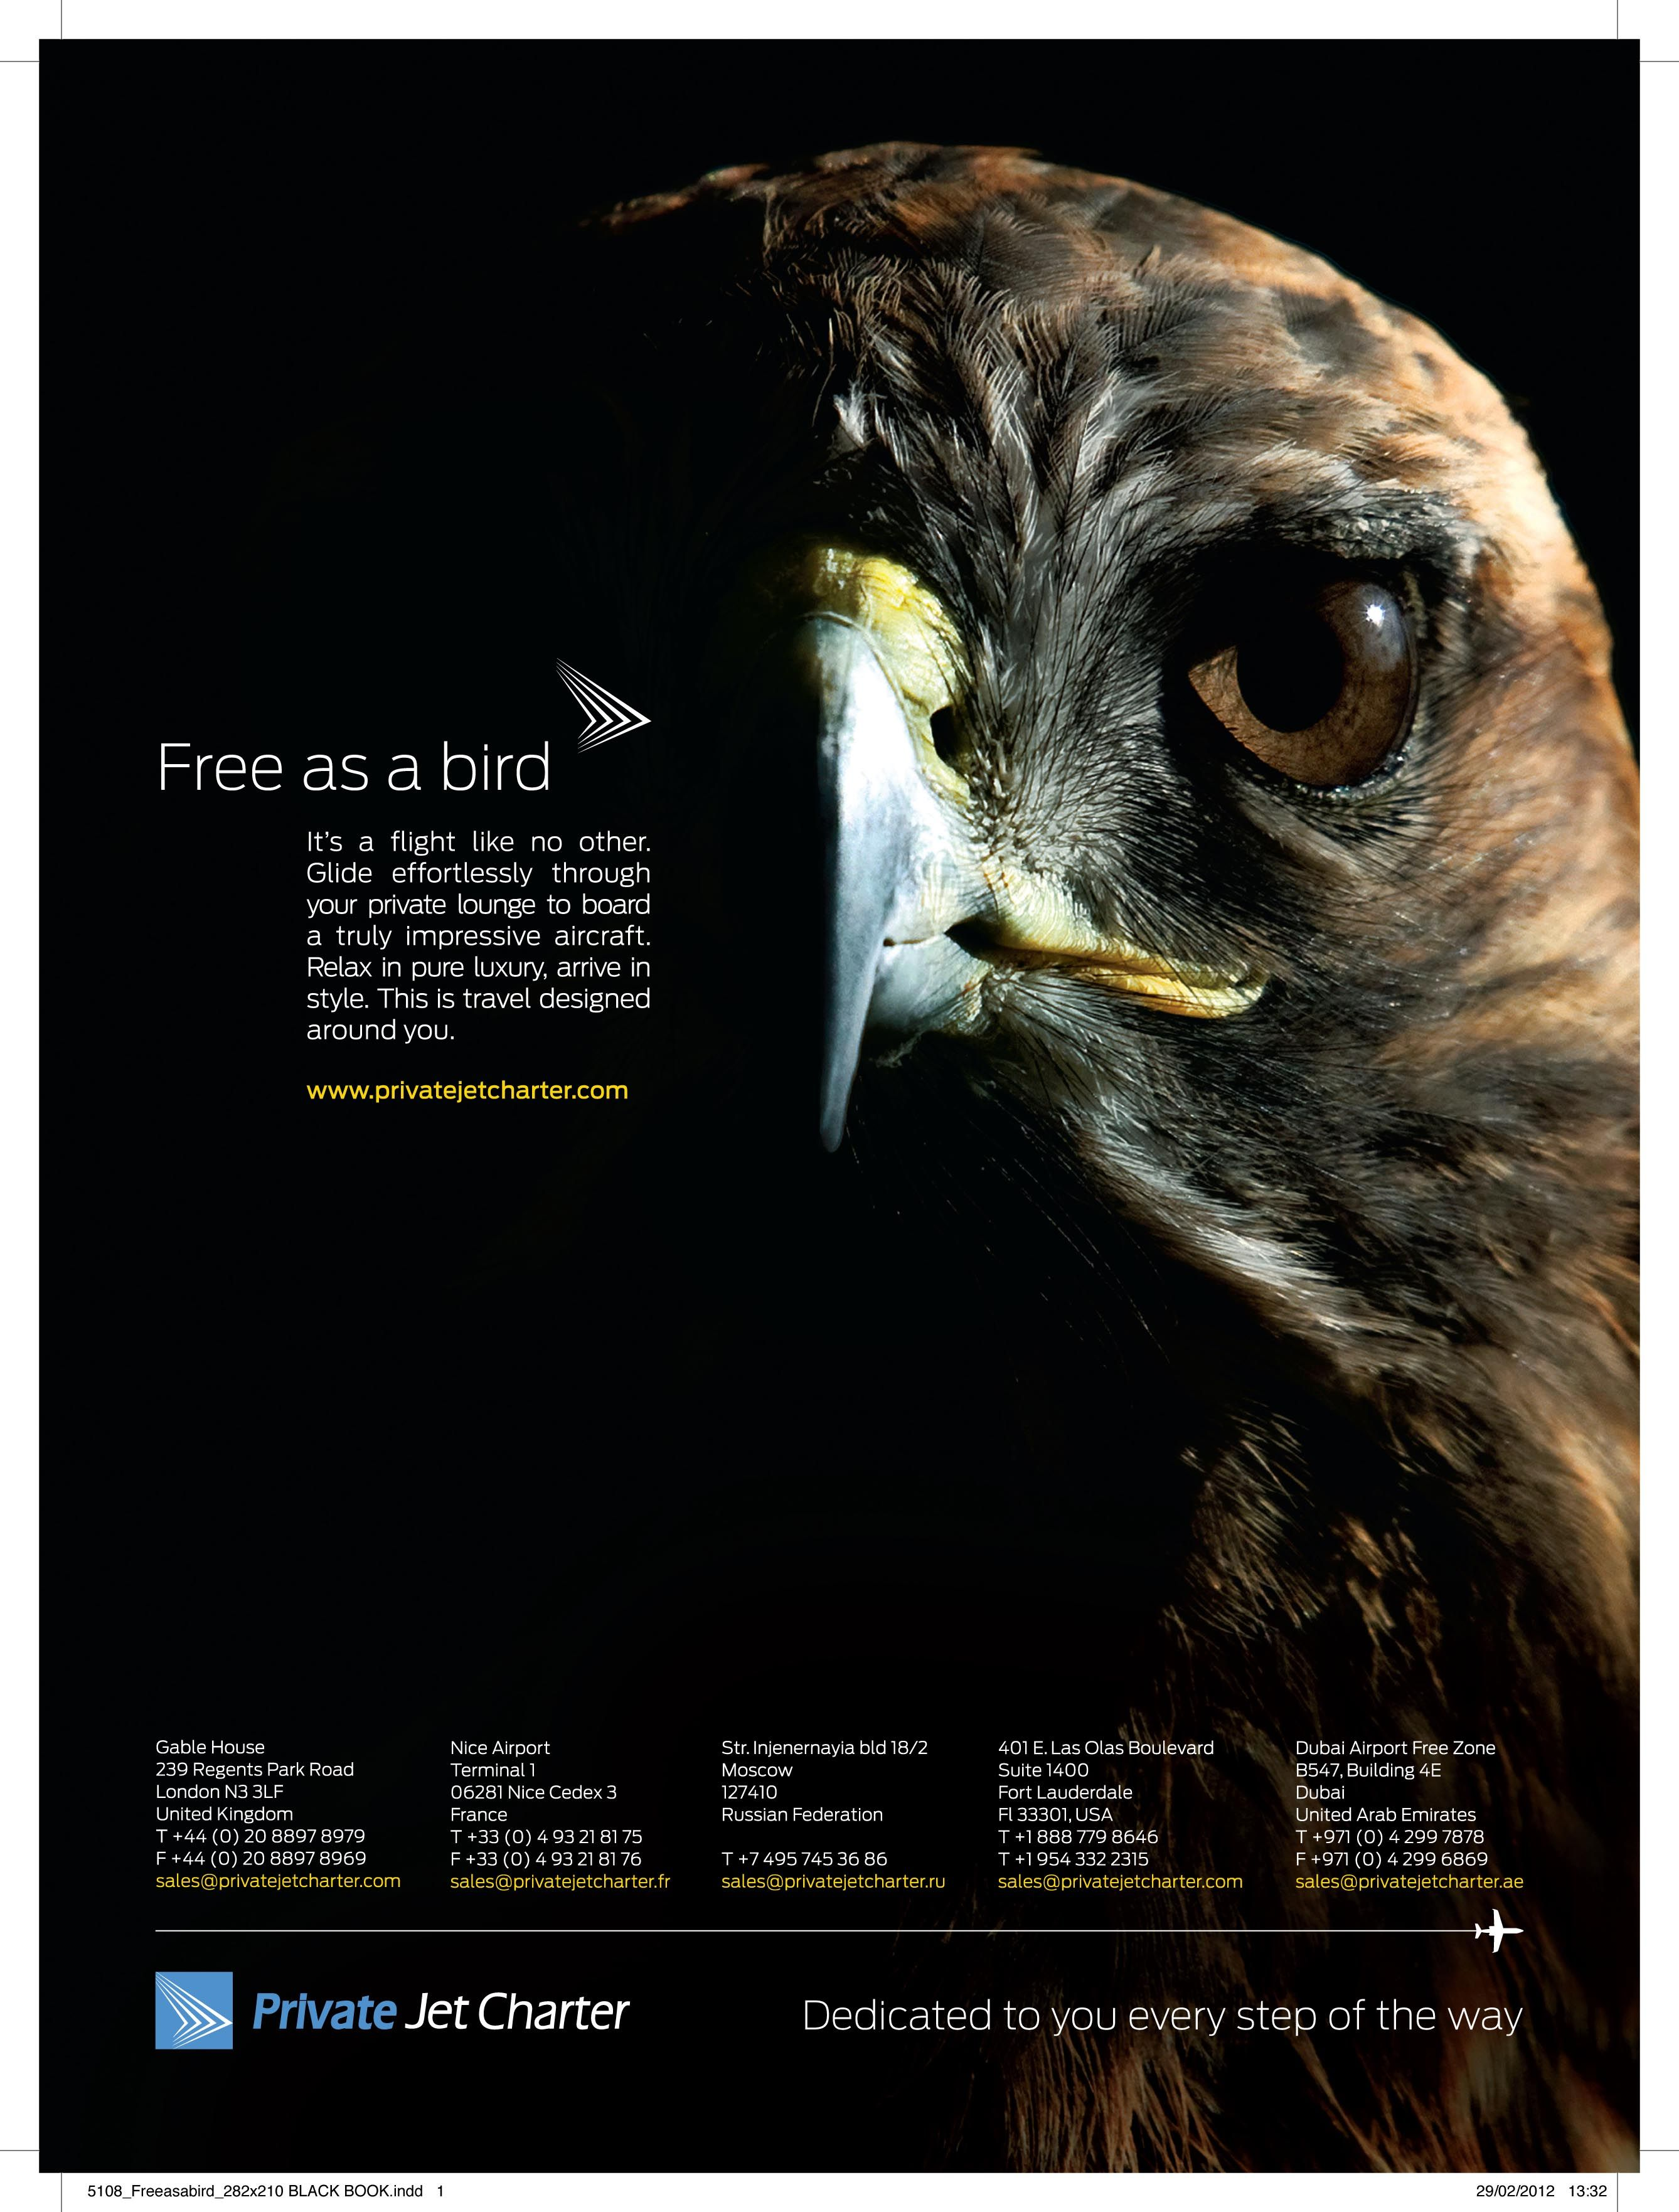 And another one from our new ad campaign. Do you feel as free as a bird today?